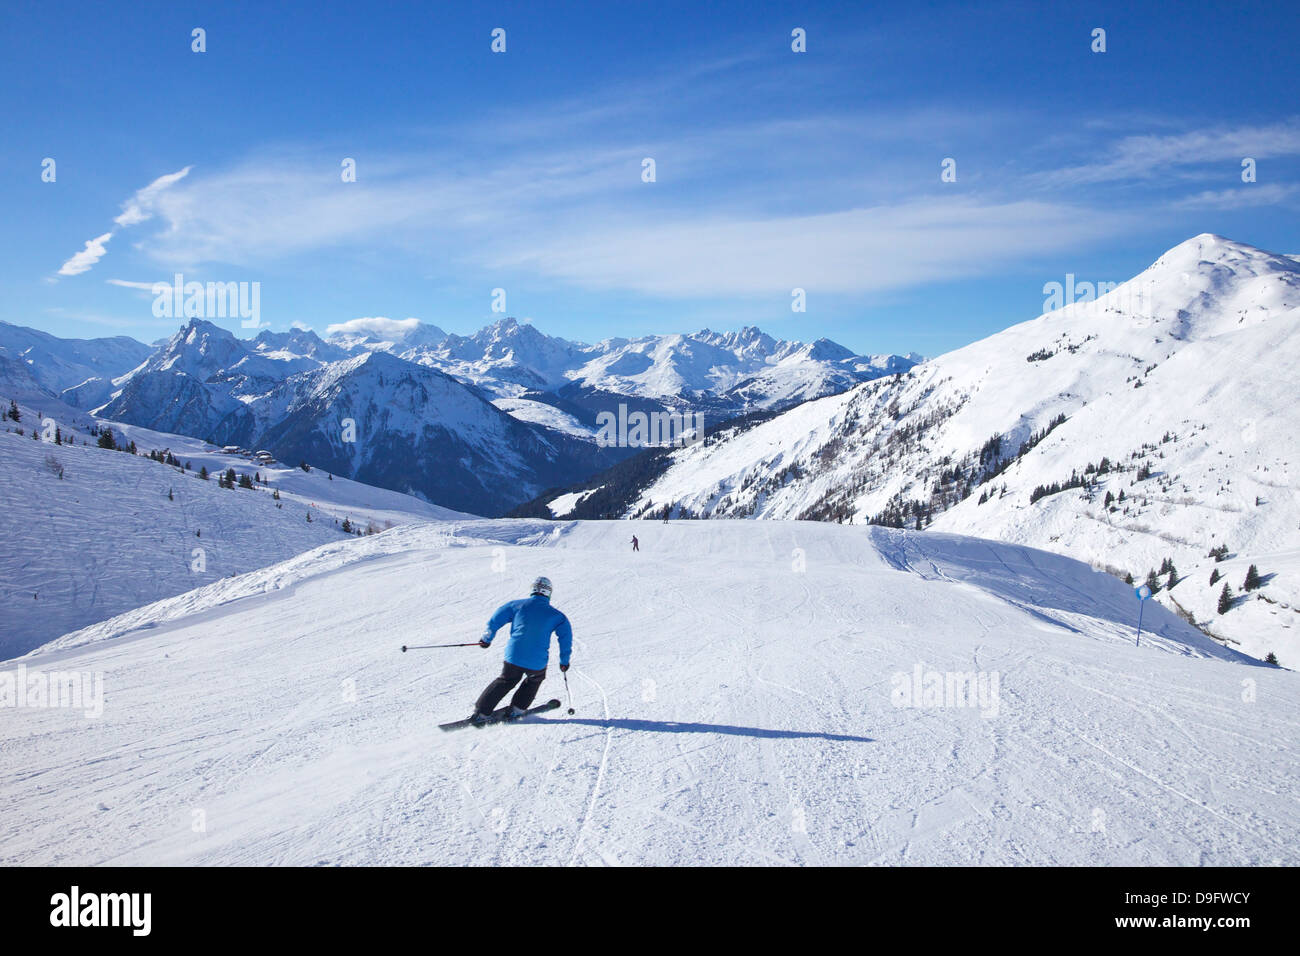 Skiers on Levasset blue piste in winter sunshine, Champagny, La Plagne, French Alps, France - Stock Image